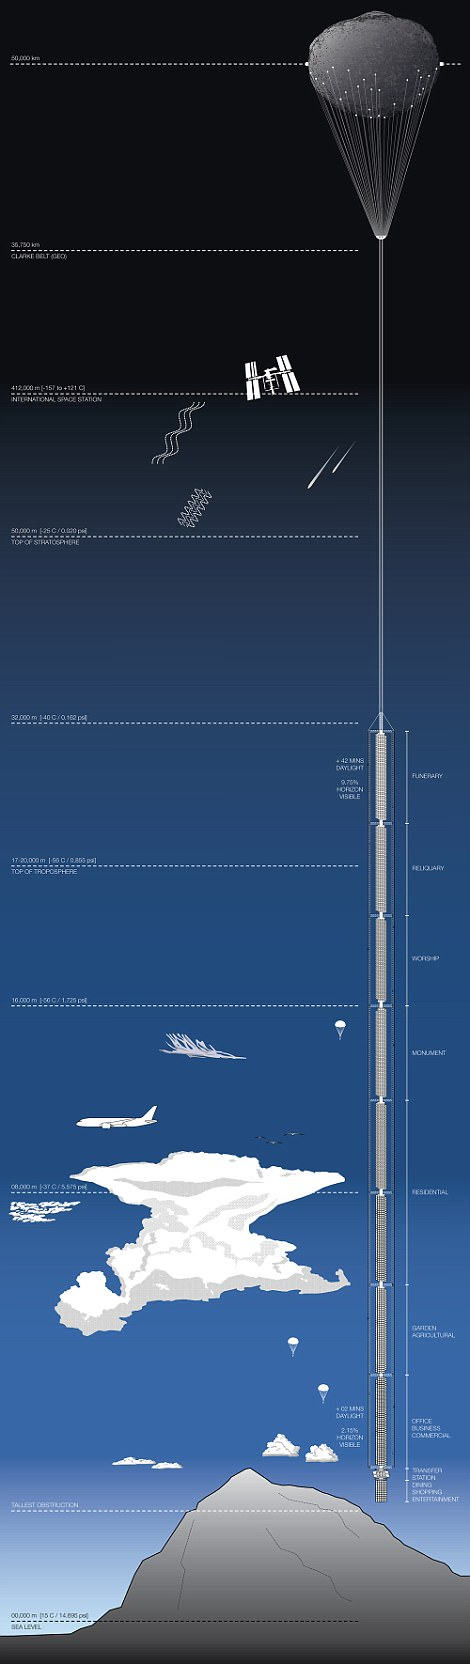 Plans for world's tallest building to be suspended from an orbiting asteroid